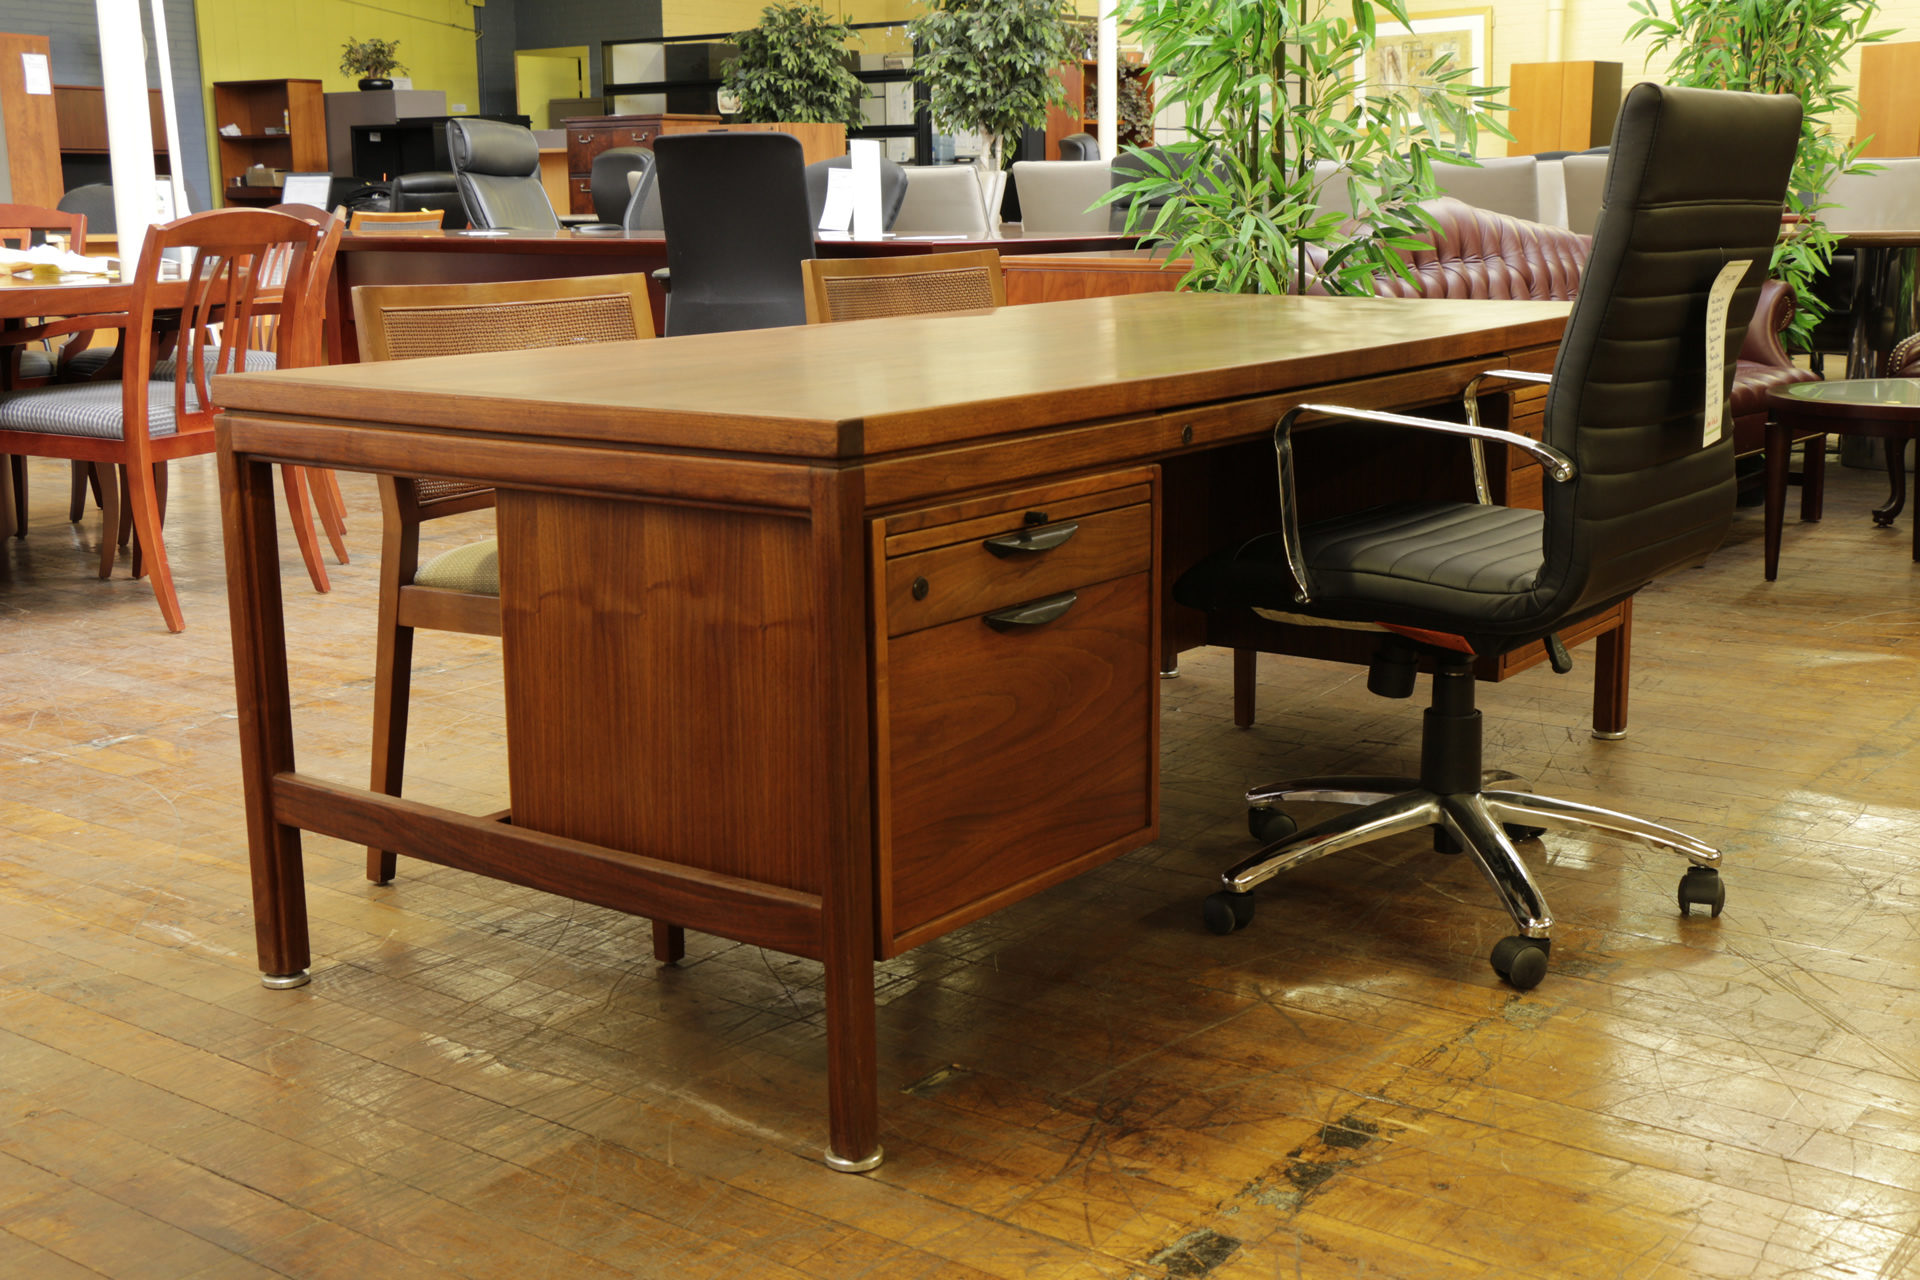 peartreeofficefurniture_peartreeofficefurniture_mg_1967.jpg